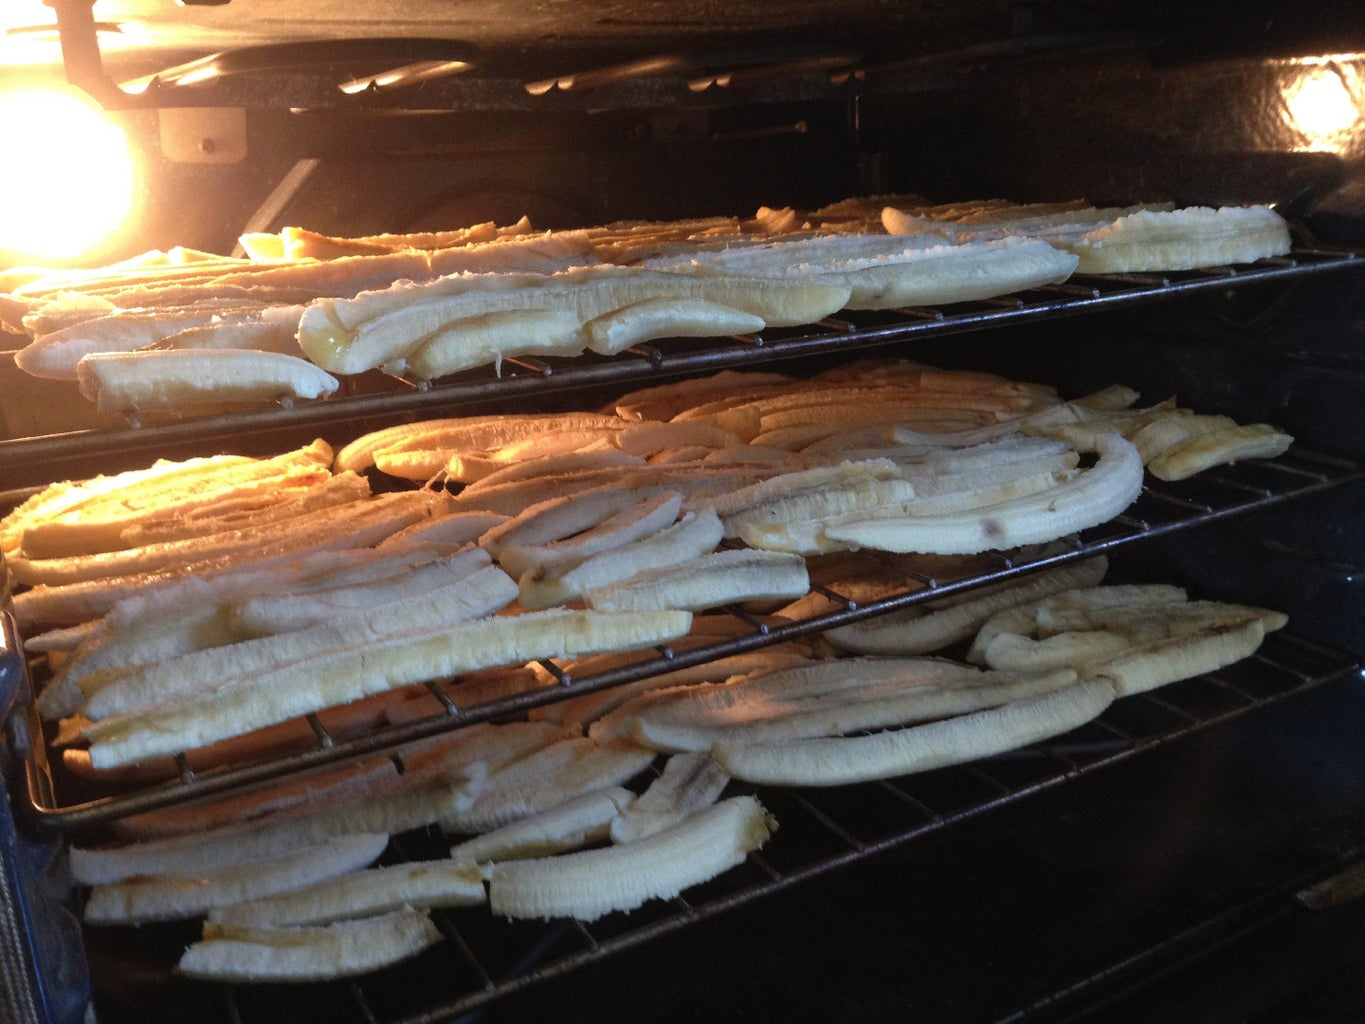 Put Them in the Oven and Wait...